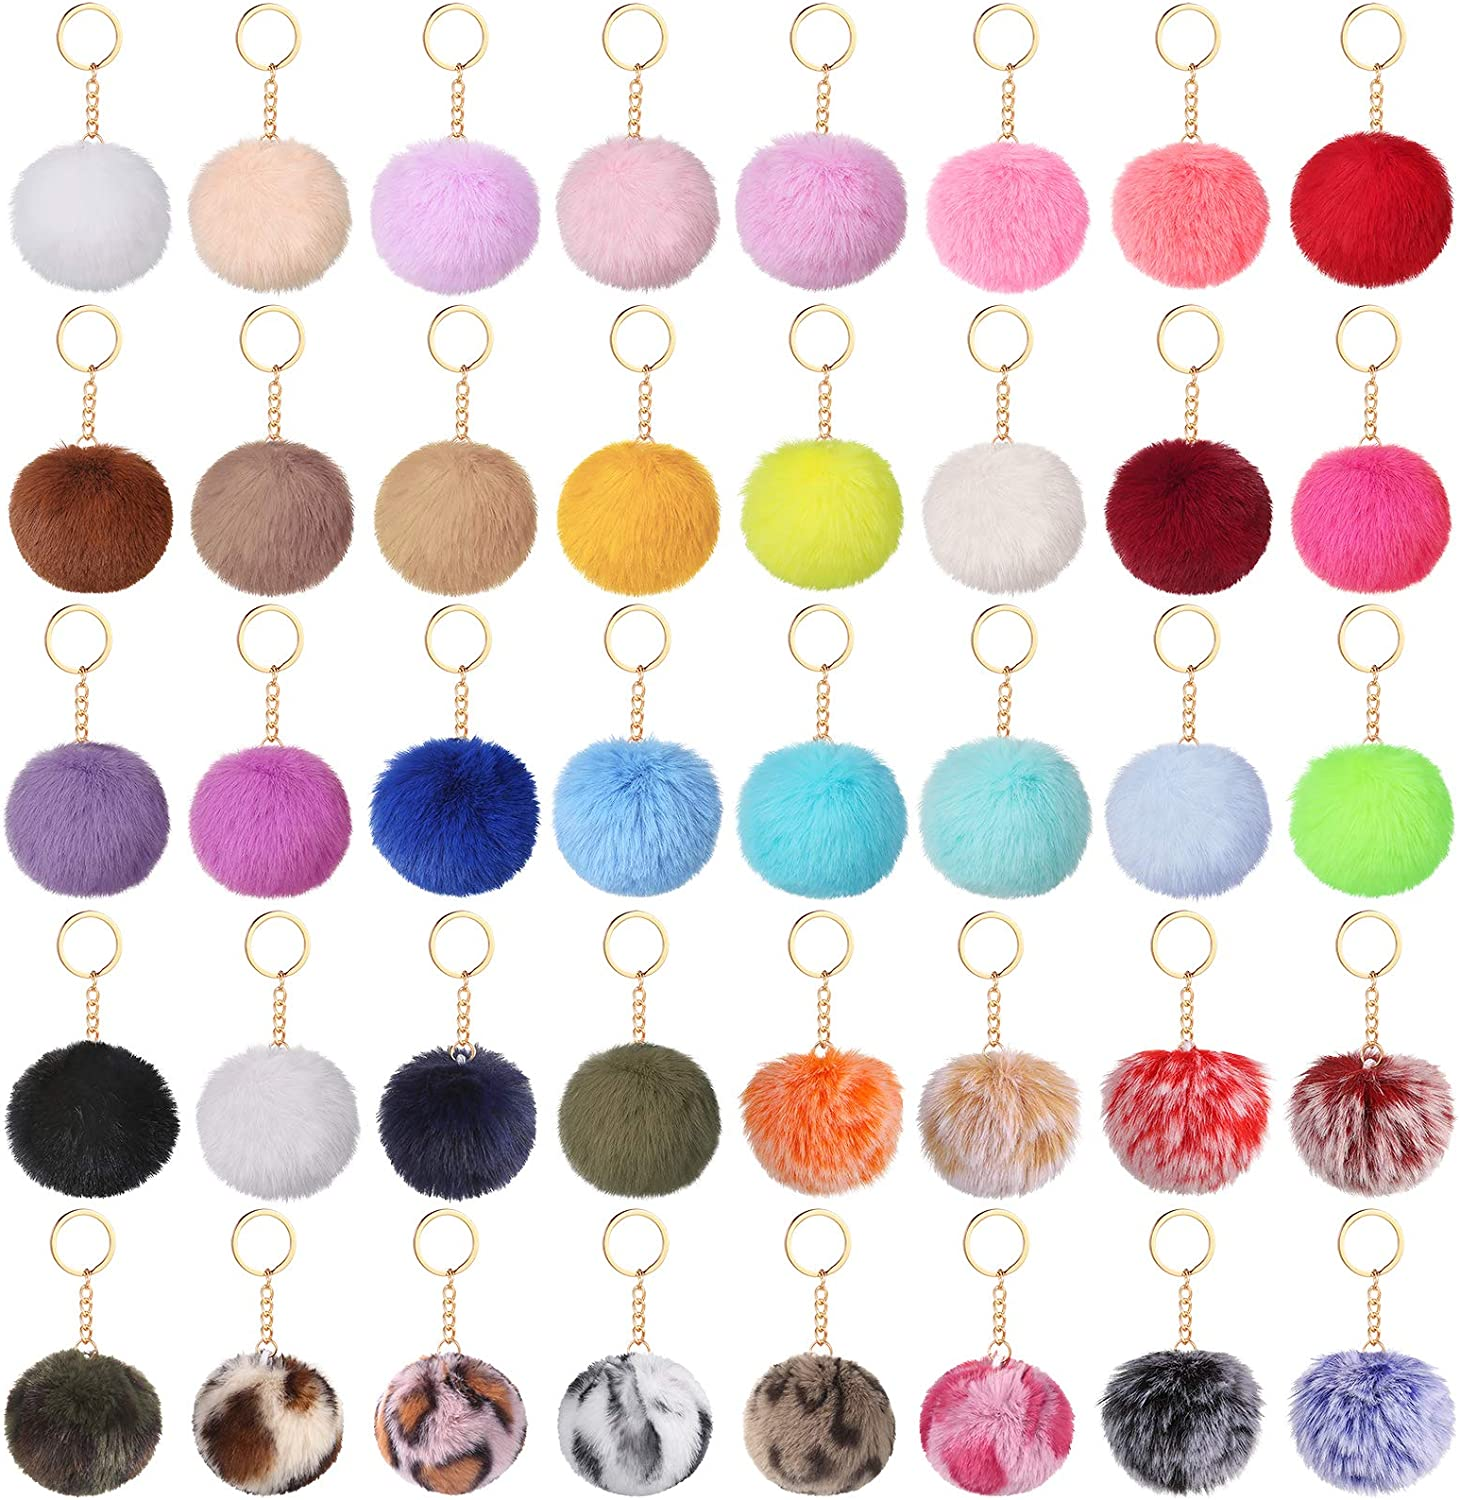 Auihiay 40 Pieces Pom Poms Keychains Fluffy Balls Pompoms Key Chain Faux Rabbit Fur Pompoms Keyring for Girls Women Hats Bags Knitting Accessories